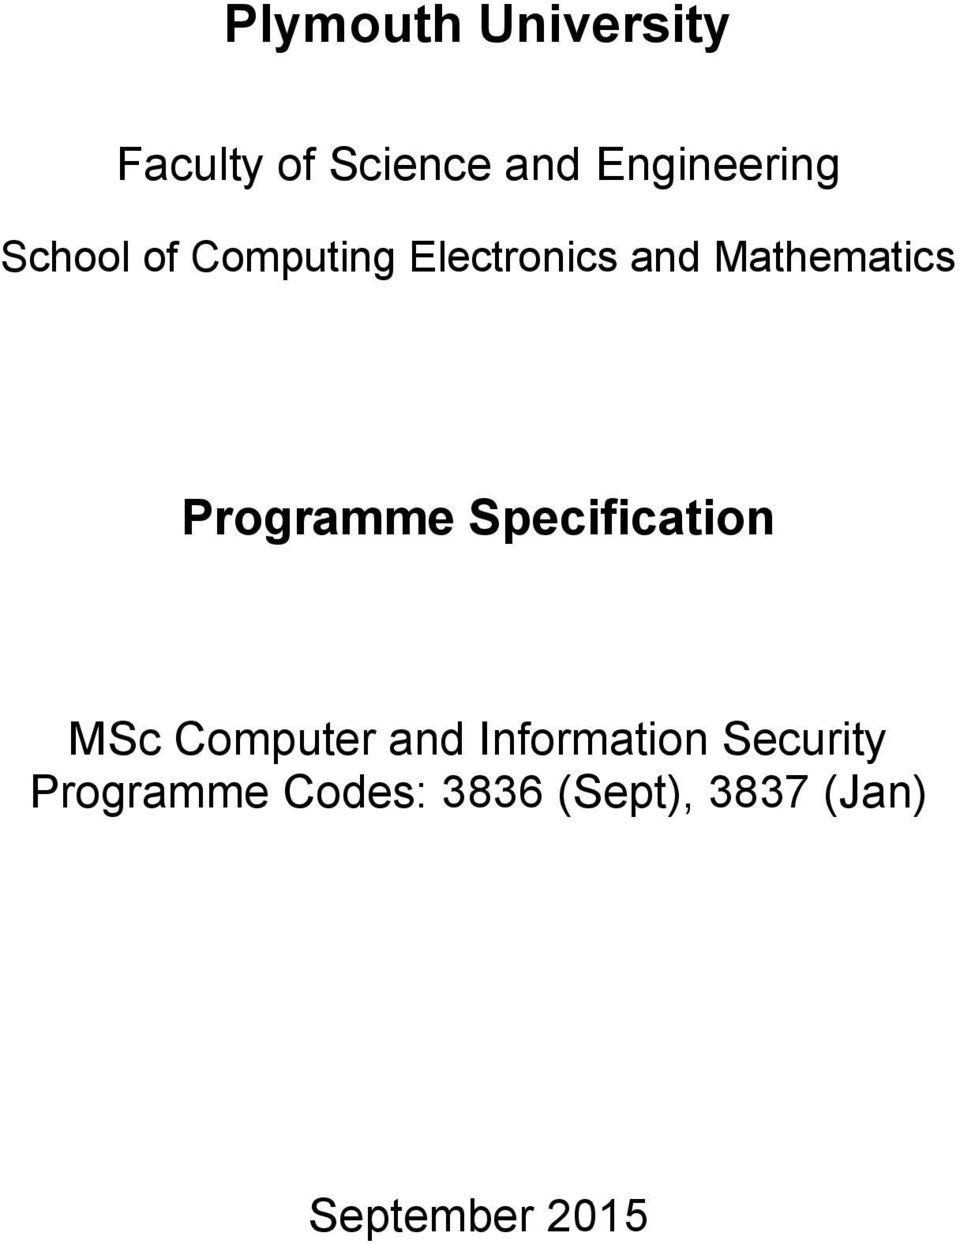 Programme Specification MSc Computer and Information